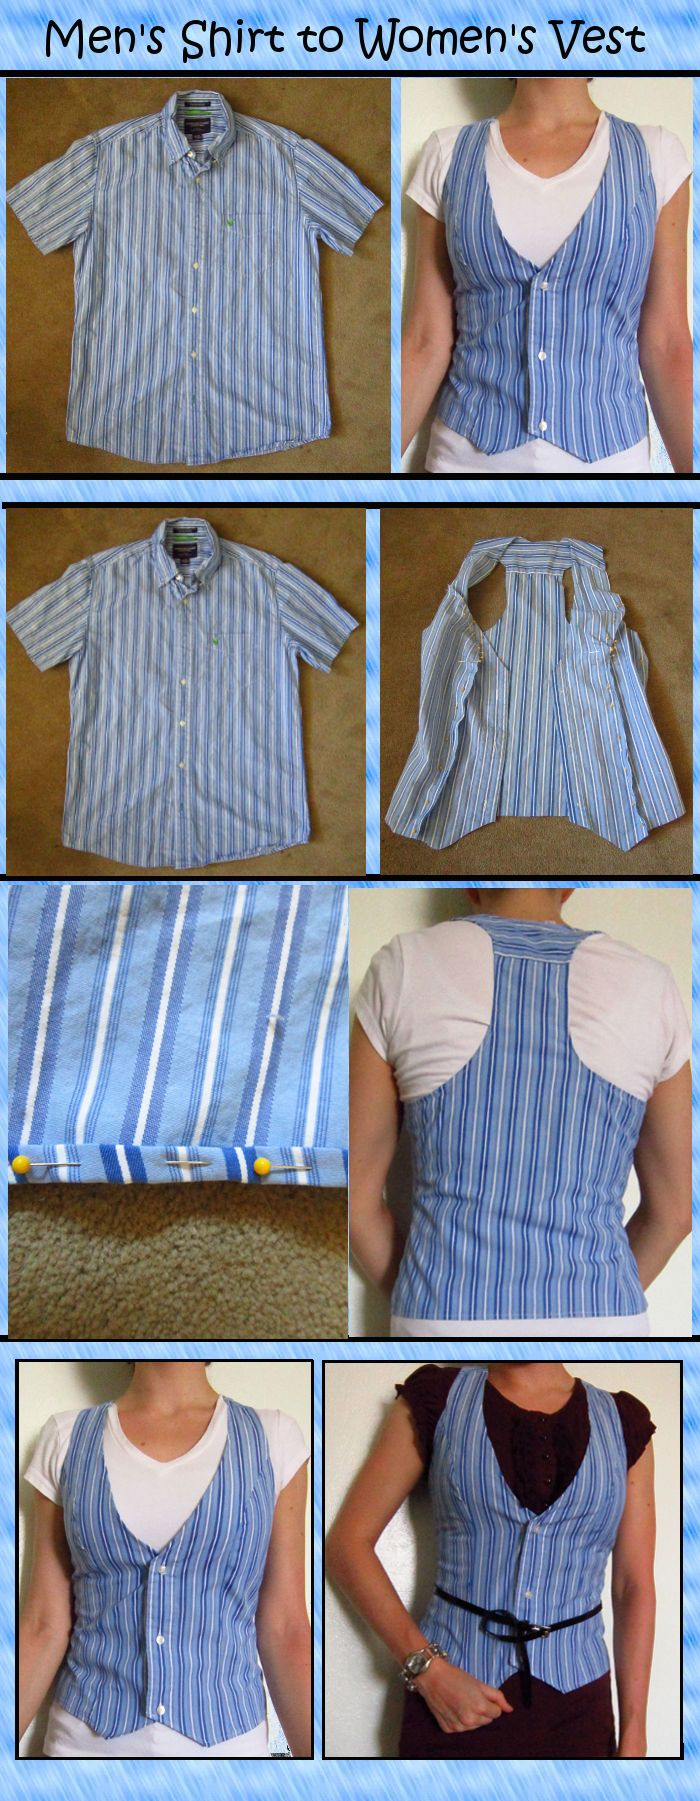 Serger Pepper Refashion a Button Up RoundUp vest